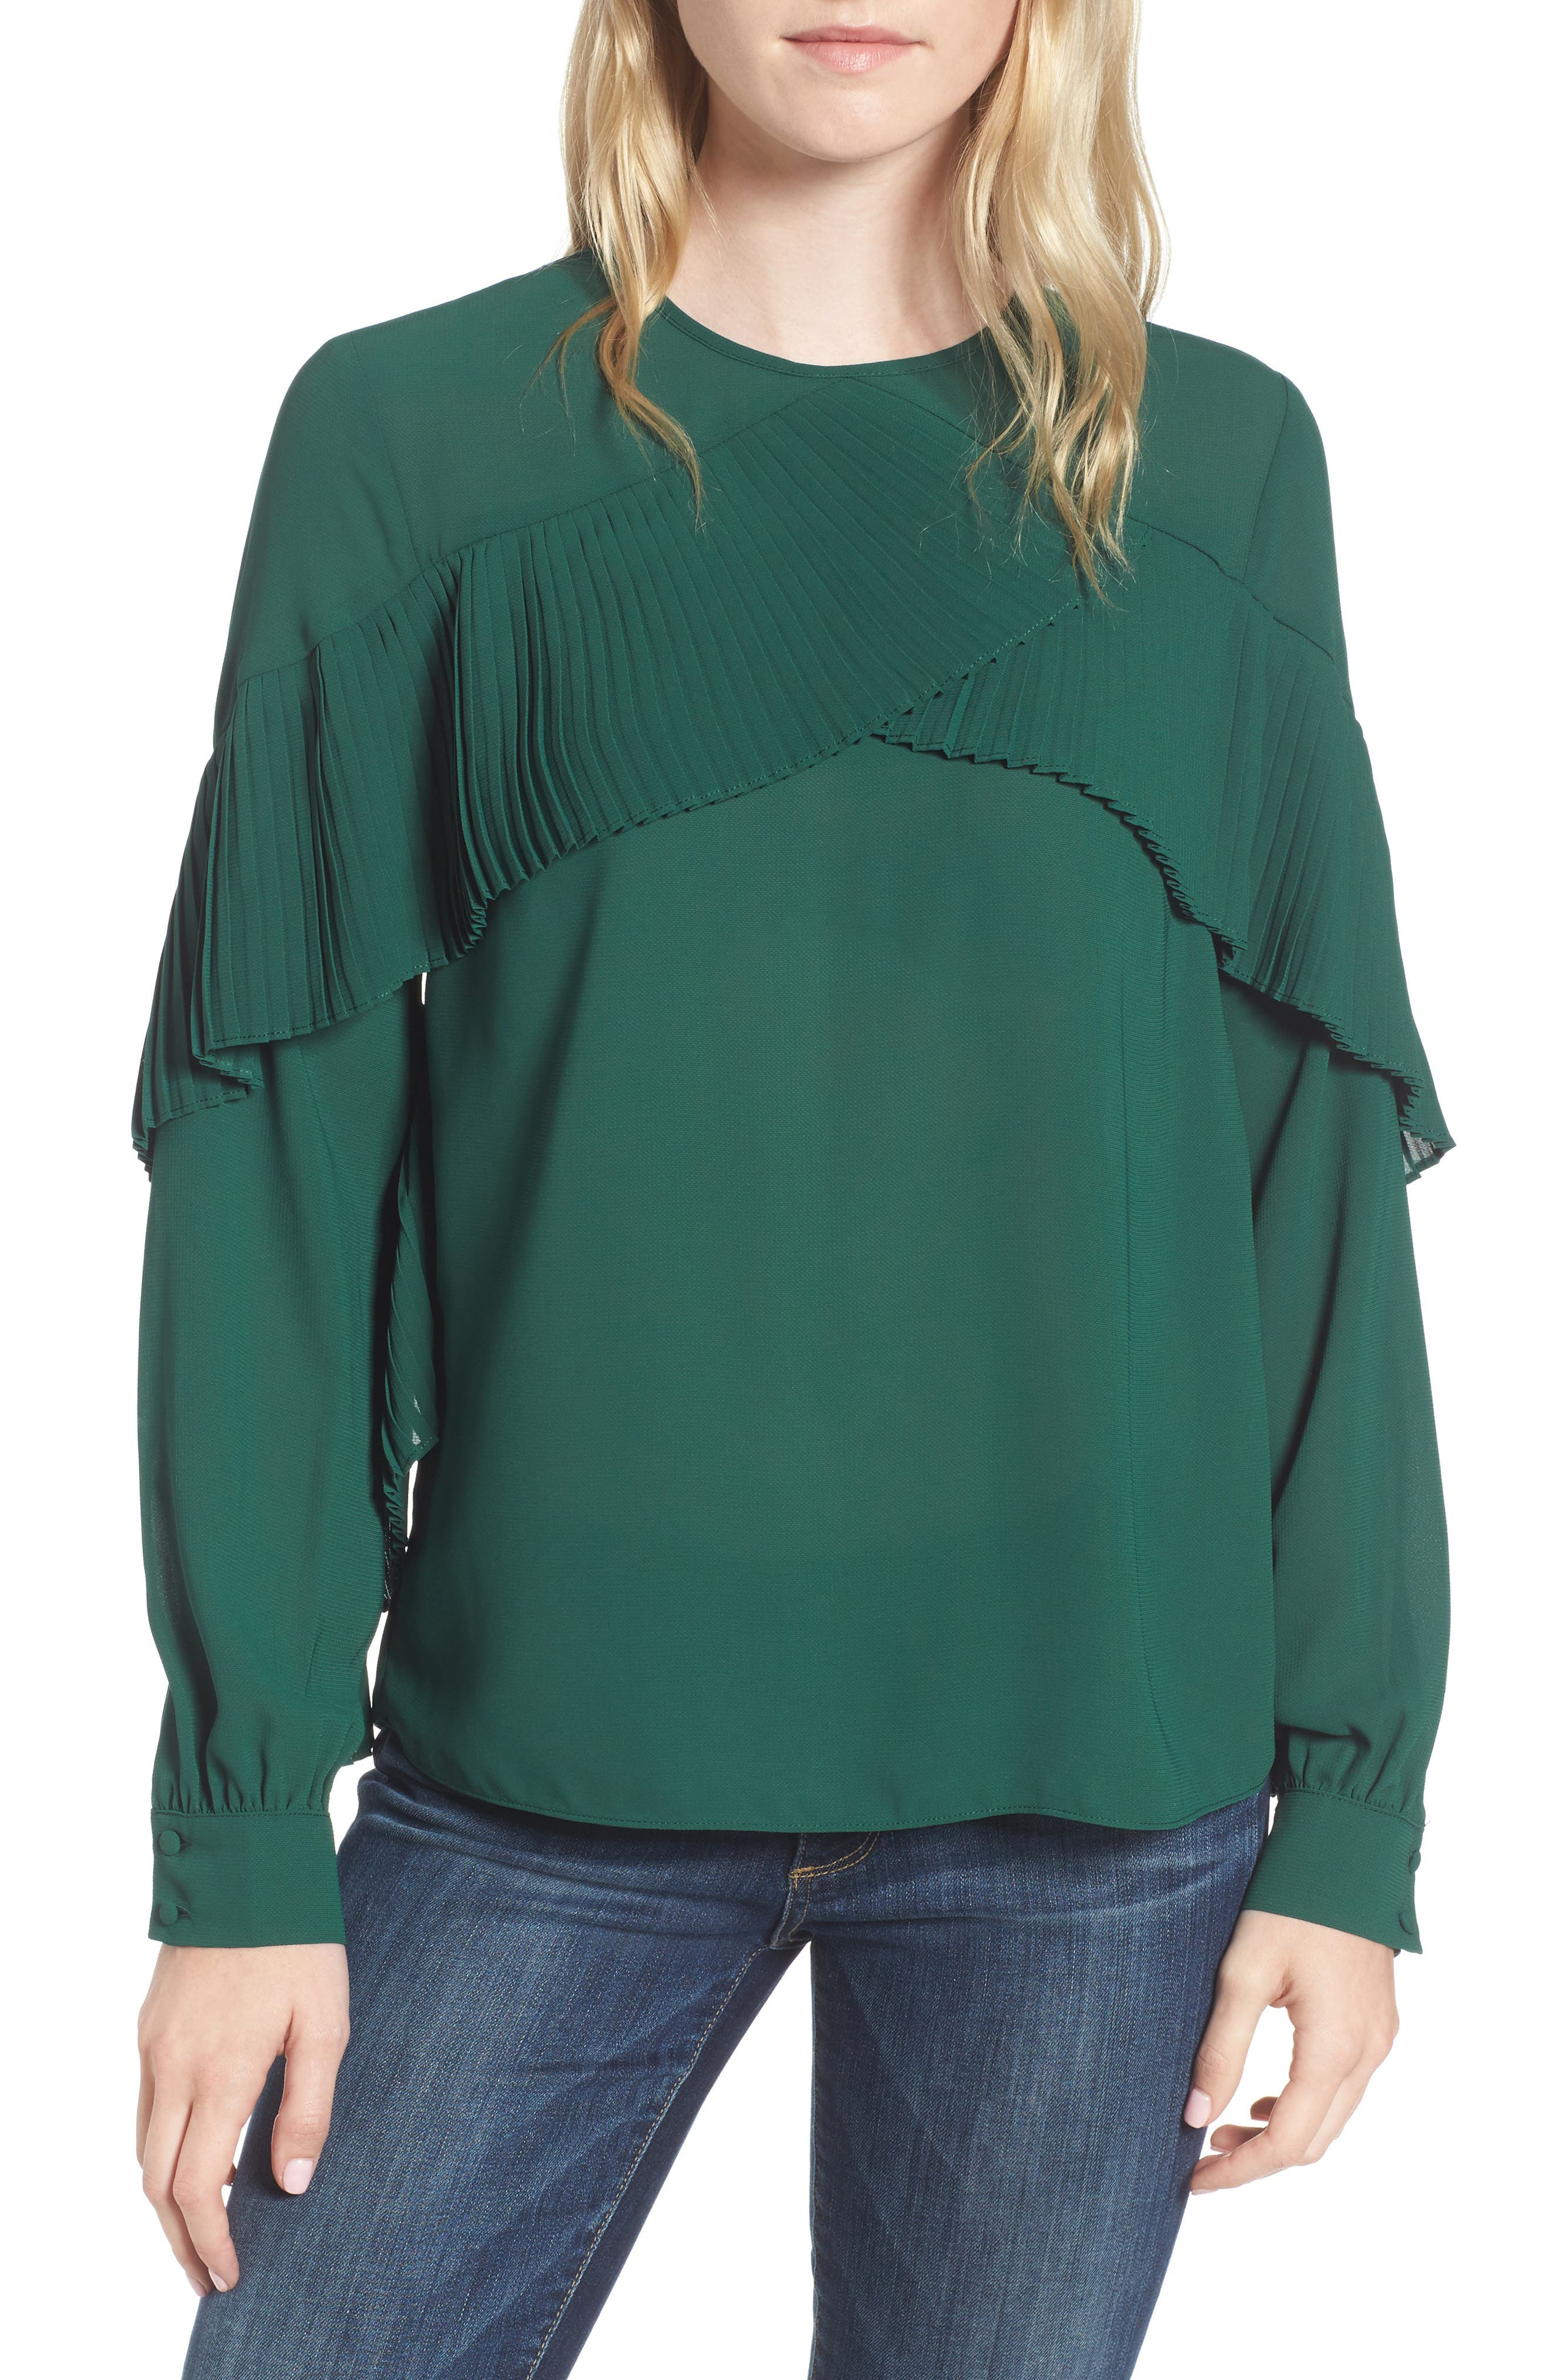 Alternate Image 1 Selected - Chelsea28 Pleated Ruffle Top